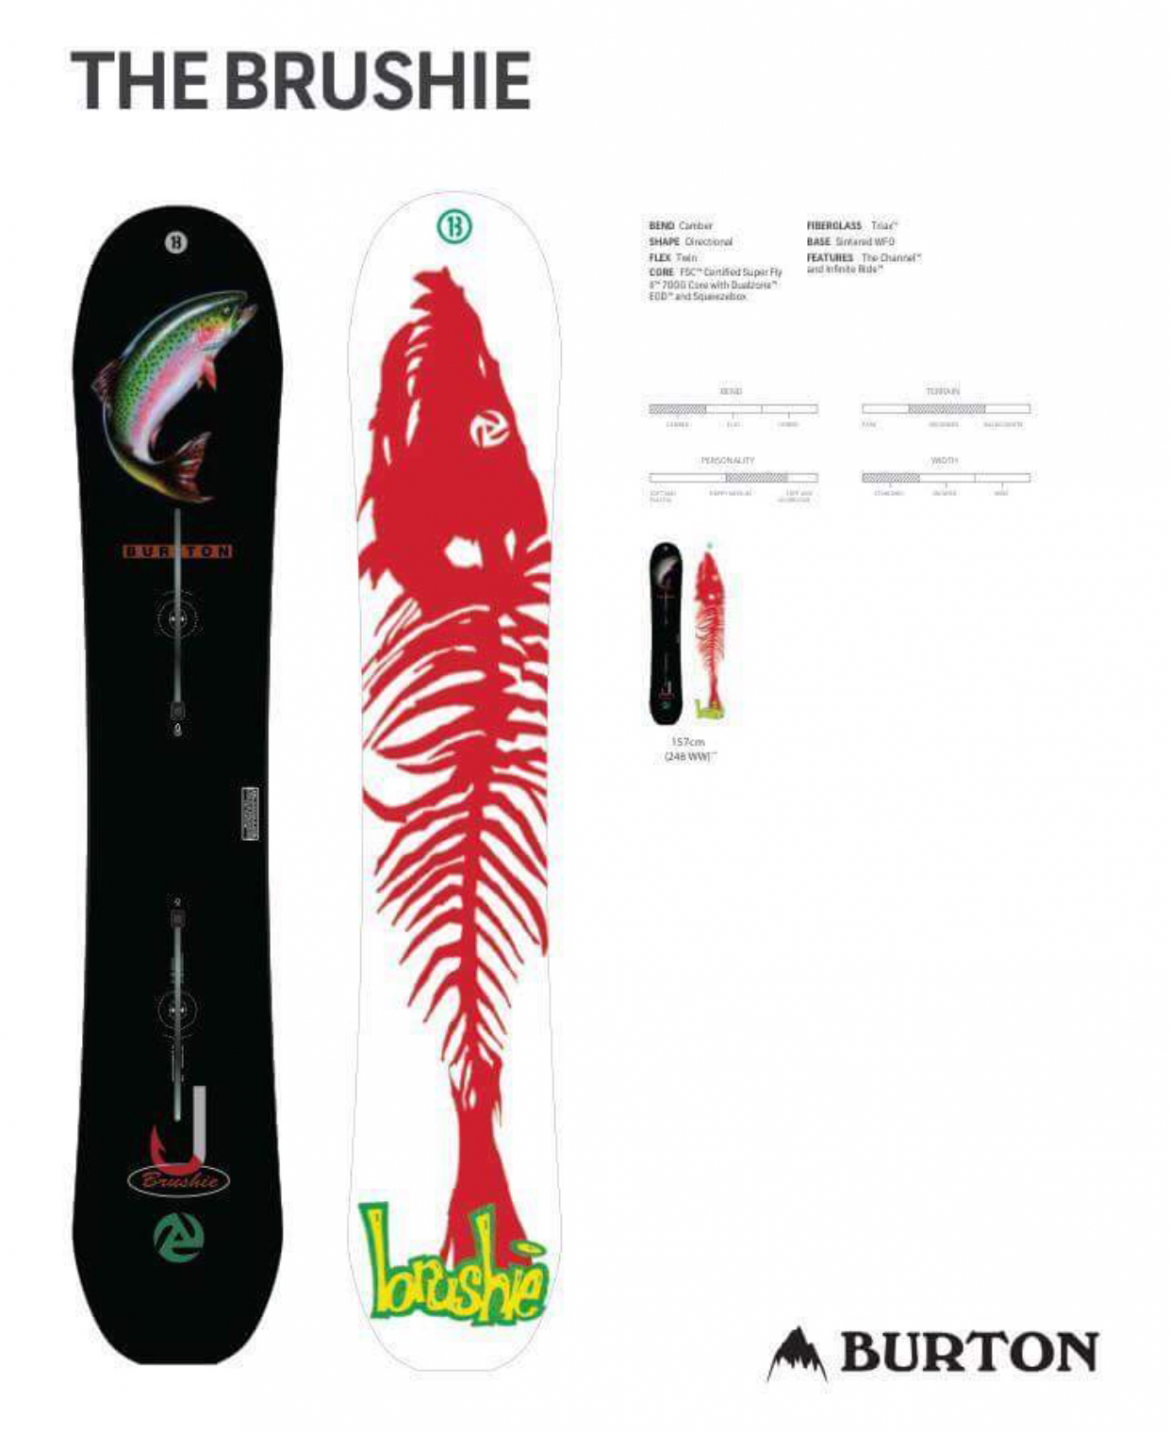 380785d6261 Burton to reissue the Brushie  trout  model  · The Reason